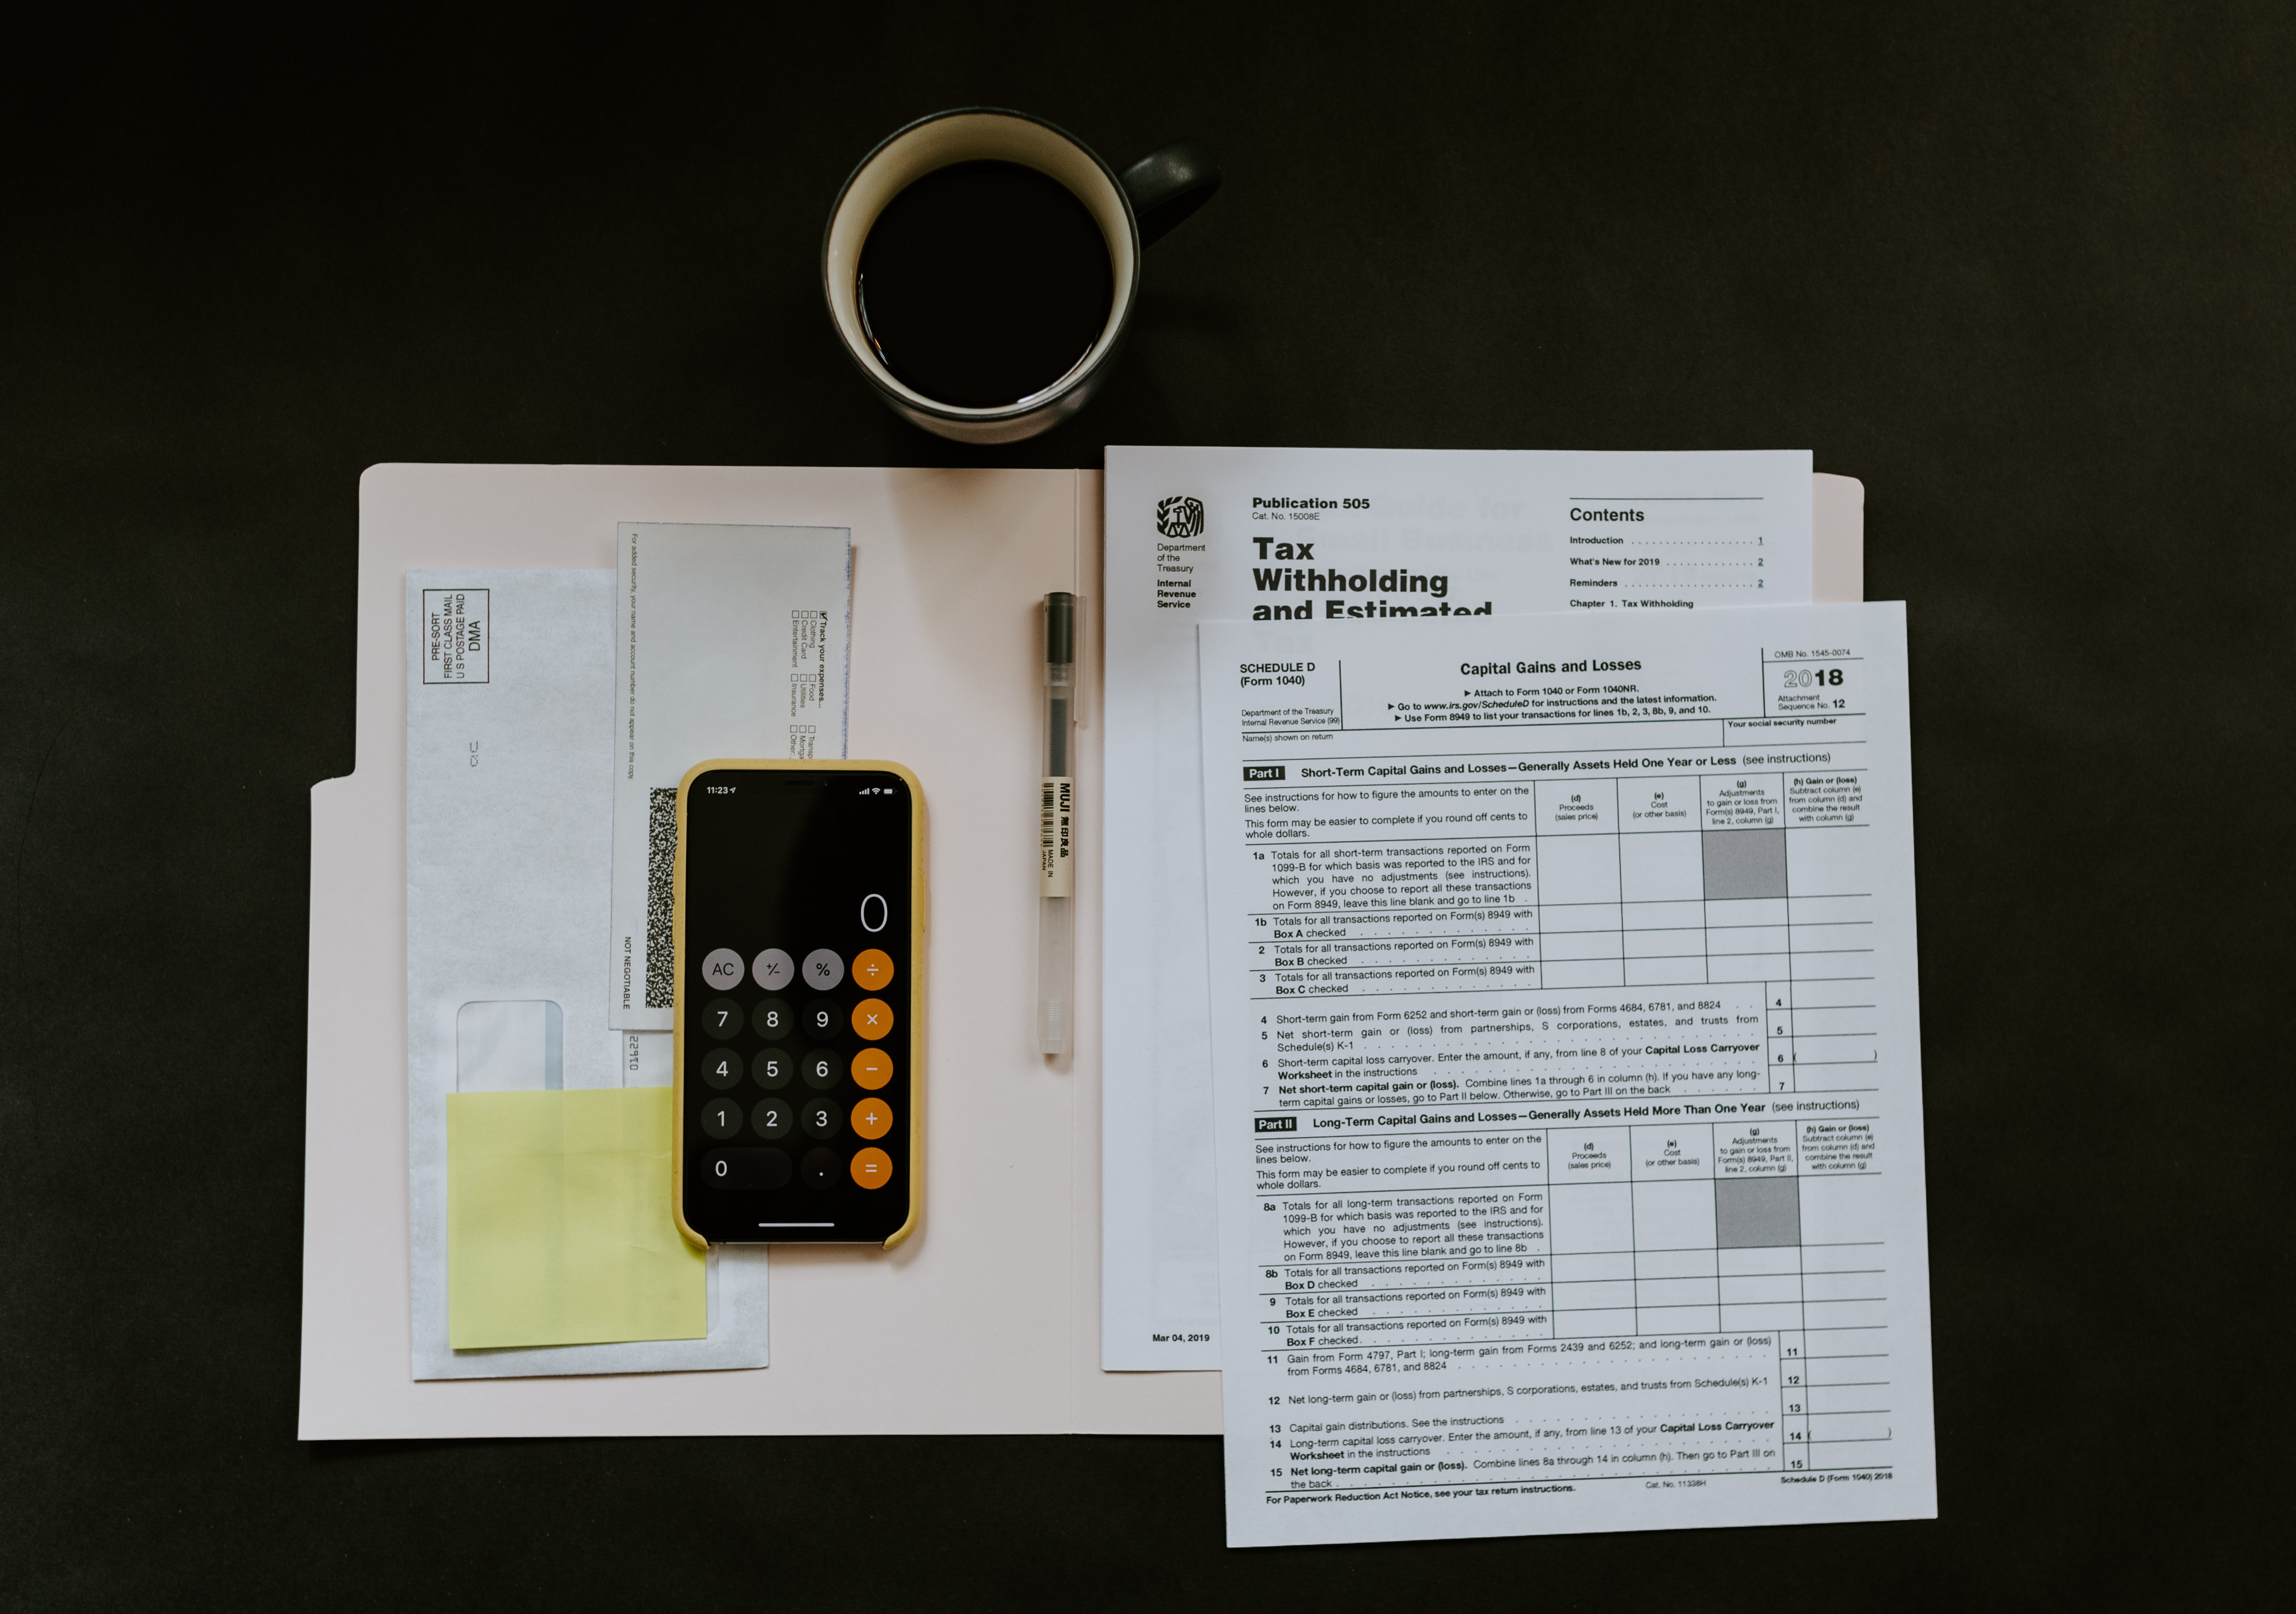 Working out Corporation Tax on calculator